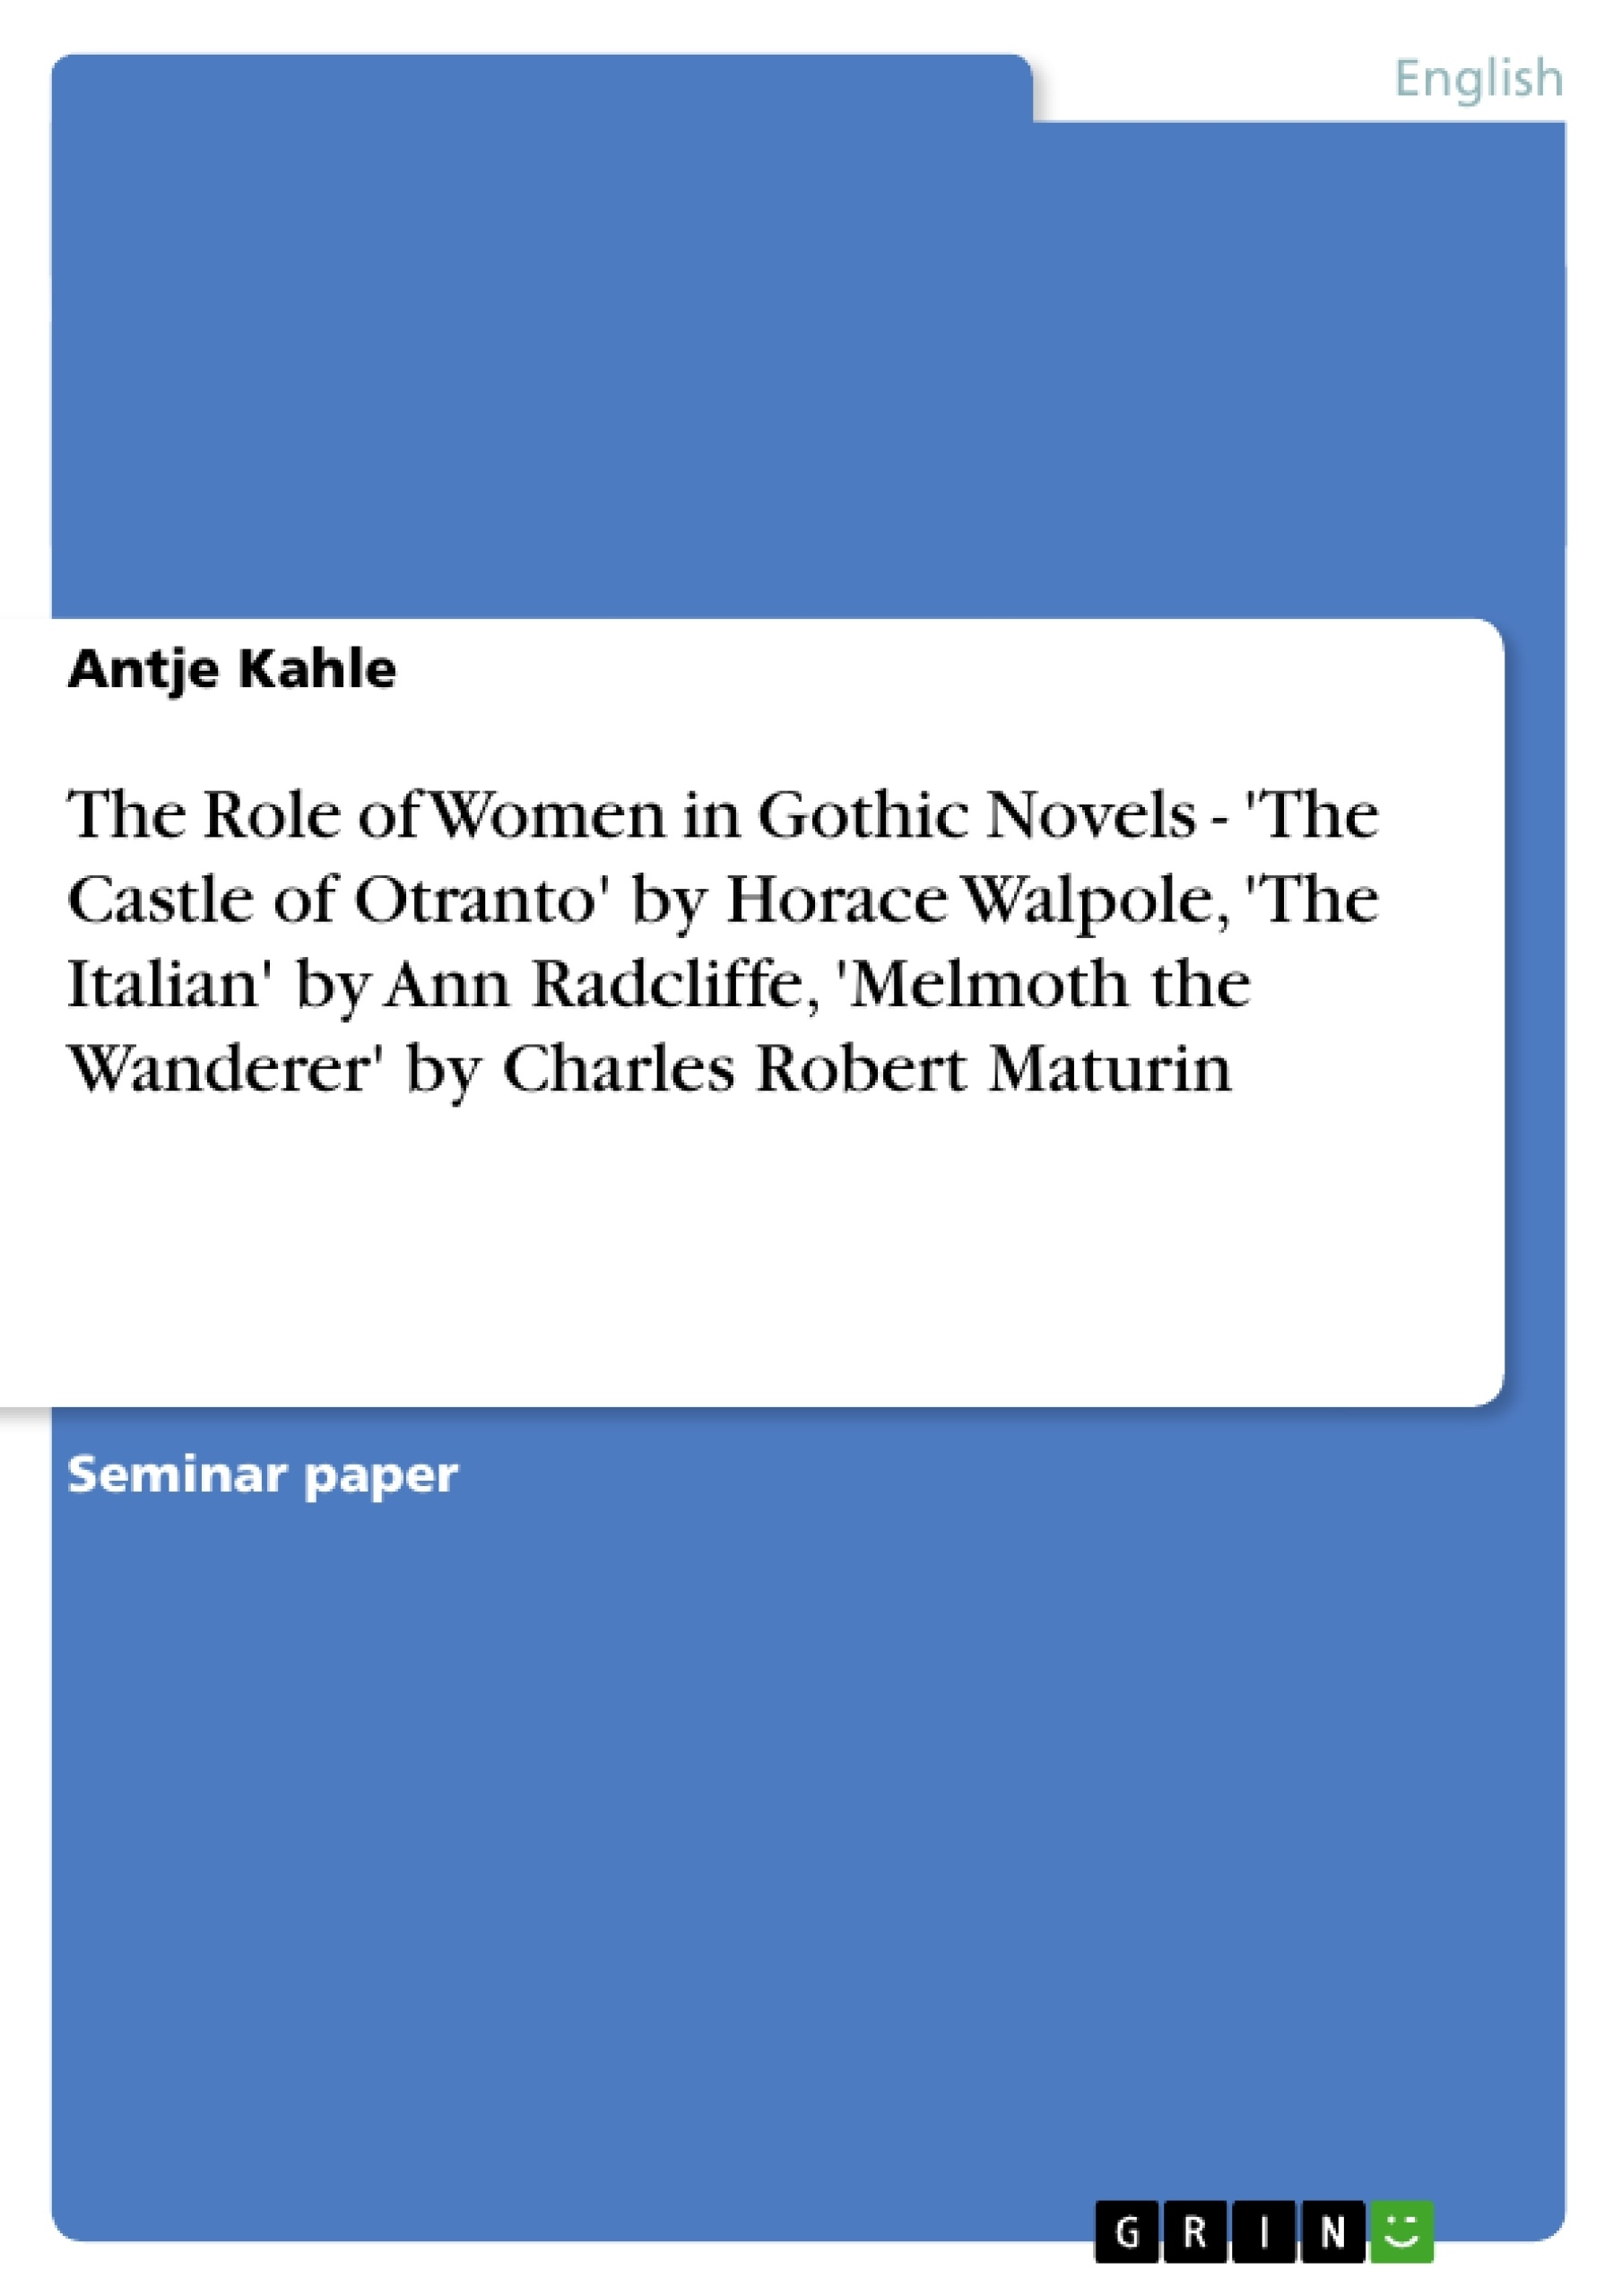 The Role Of Women In Gothic Novels  The Castle Of Otranto By  The Role Of Women In Gothic Novels  The Castle Of Otranto By    Publish Your Masters Thesis Bachelors Thesis Essay Or Term Paper